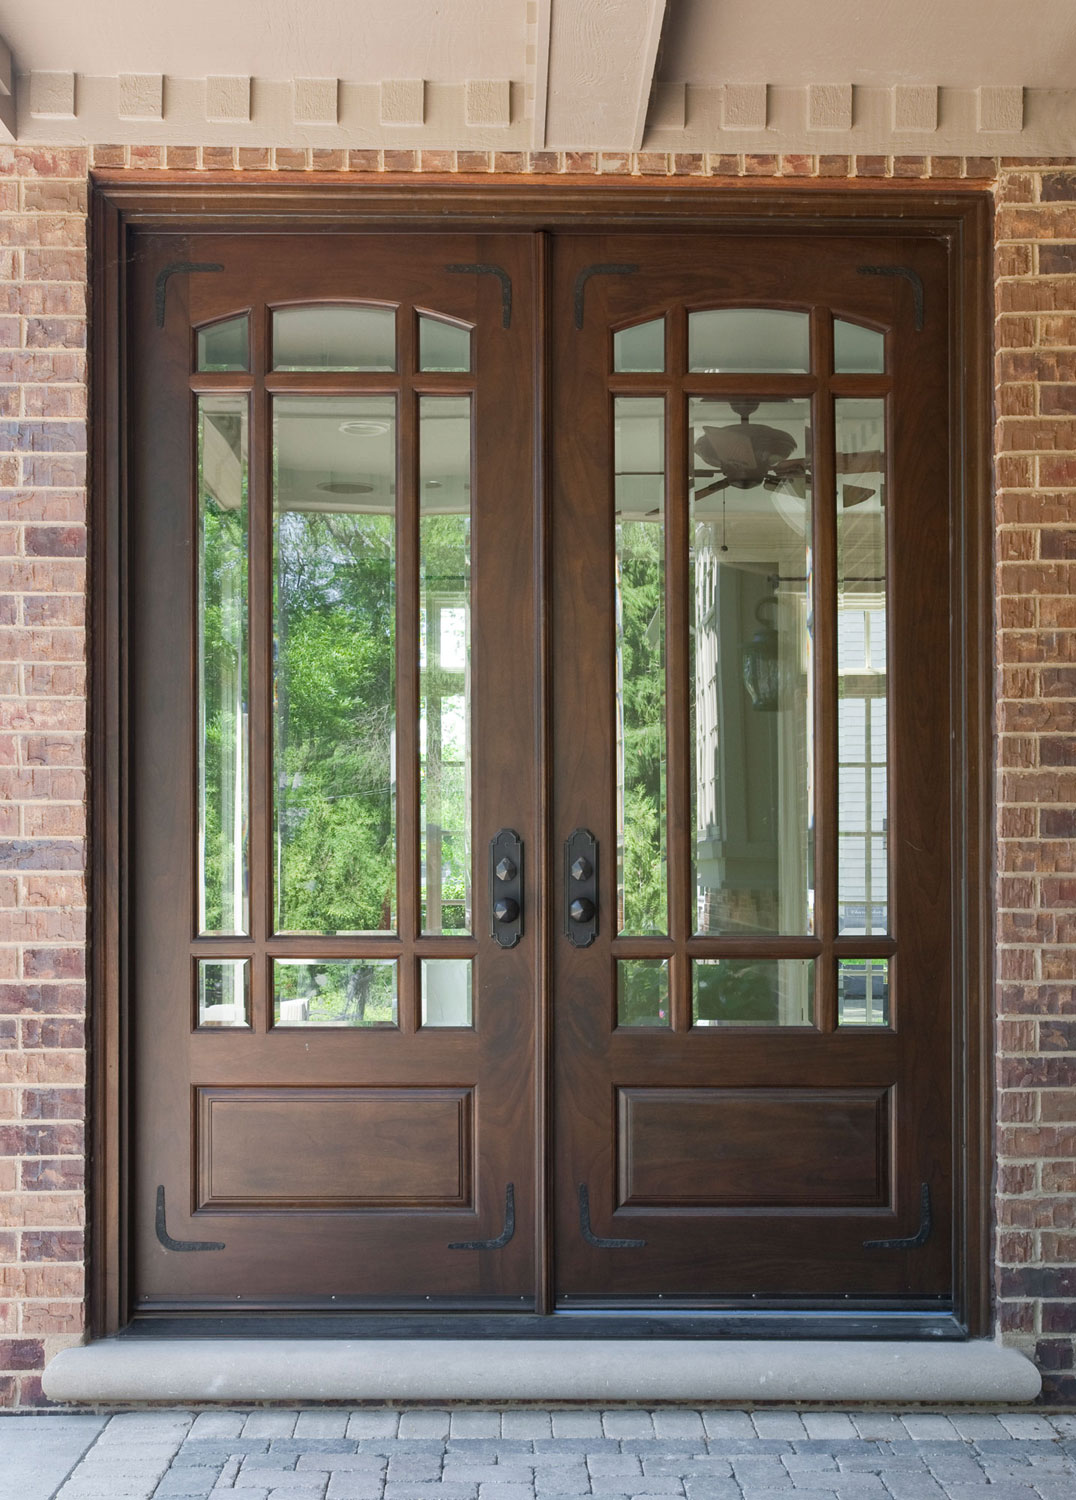 Double doors made of fiberglass are ideal for a front entry